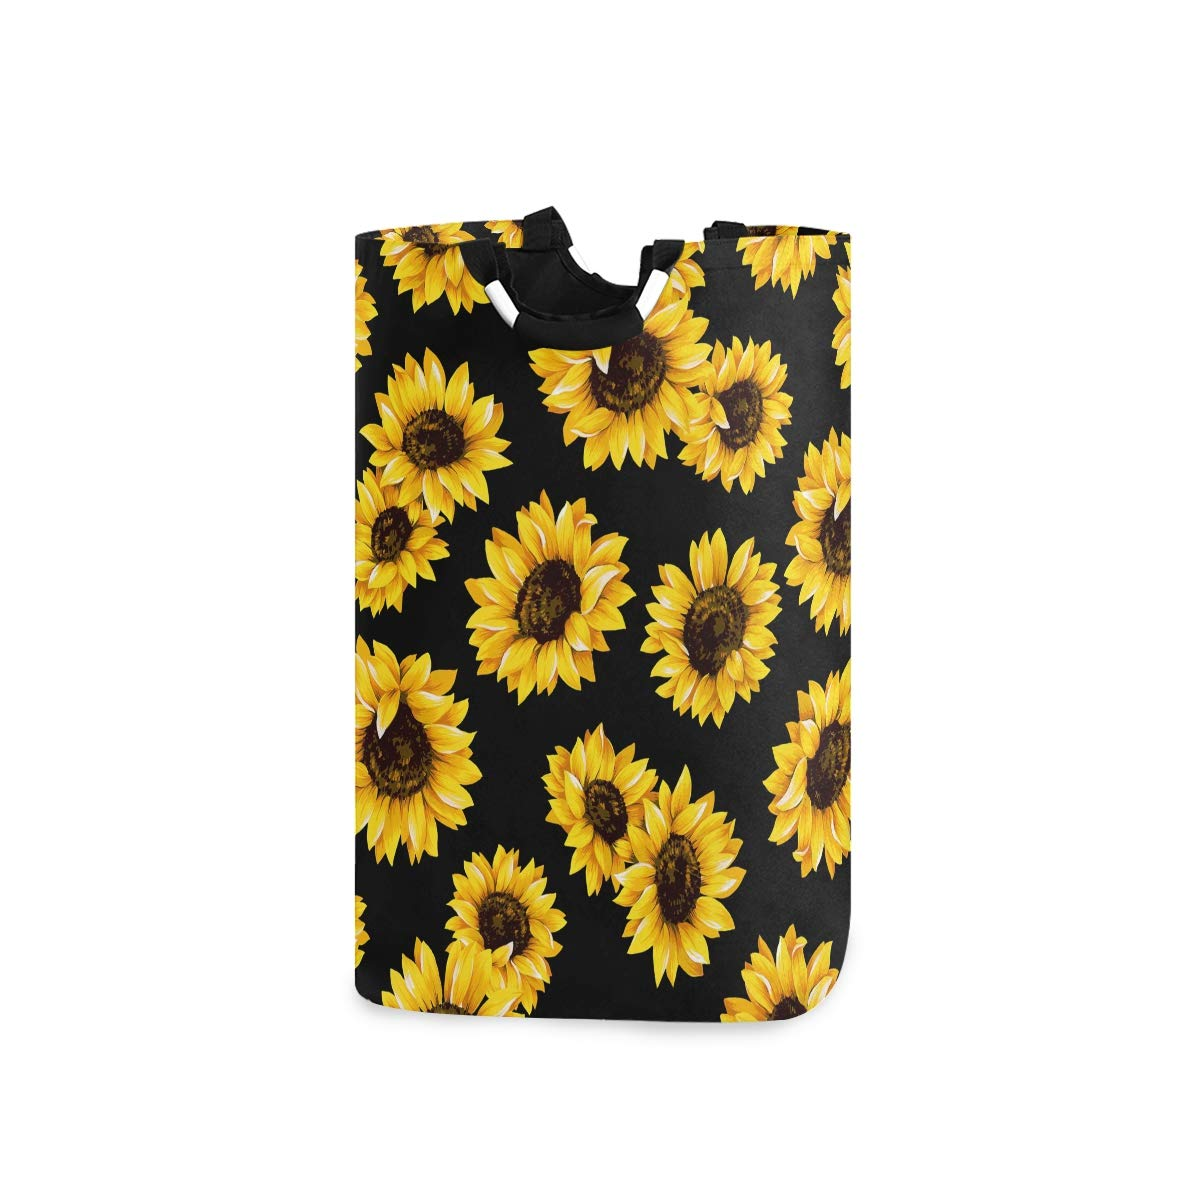 DOMIKING Laundry Storage Basket Beautiful Sunflowers in Black Background Laundry Hamper Collapsible Organizer for Kids Room Dirty Cloth Toy Dorm Bag with Handle